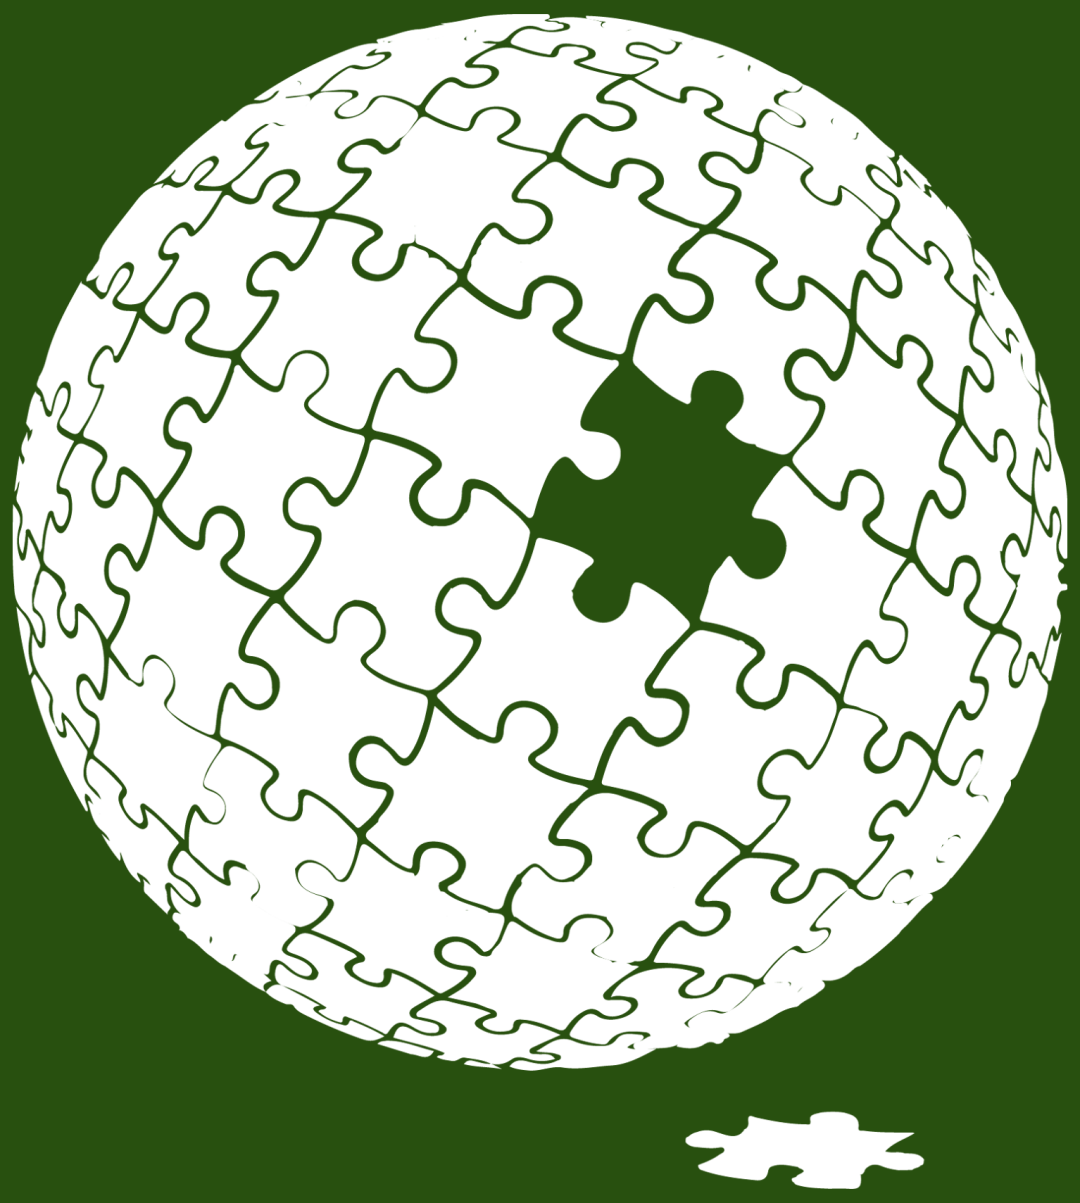 weltpuzzle